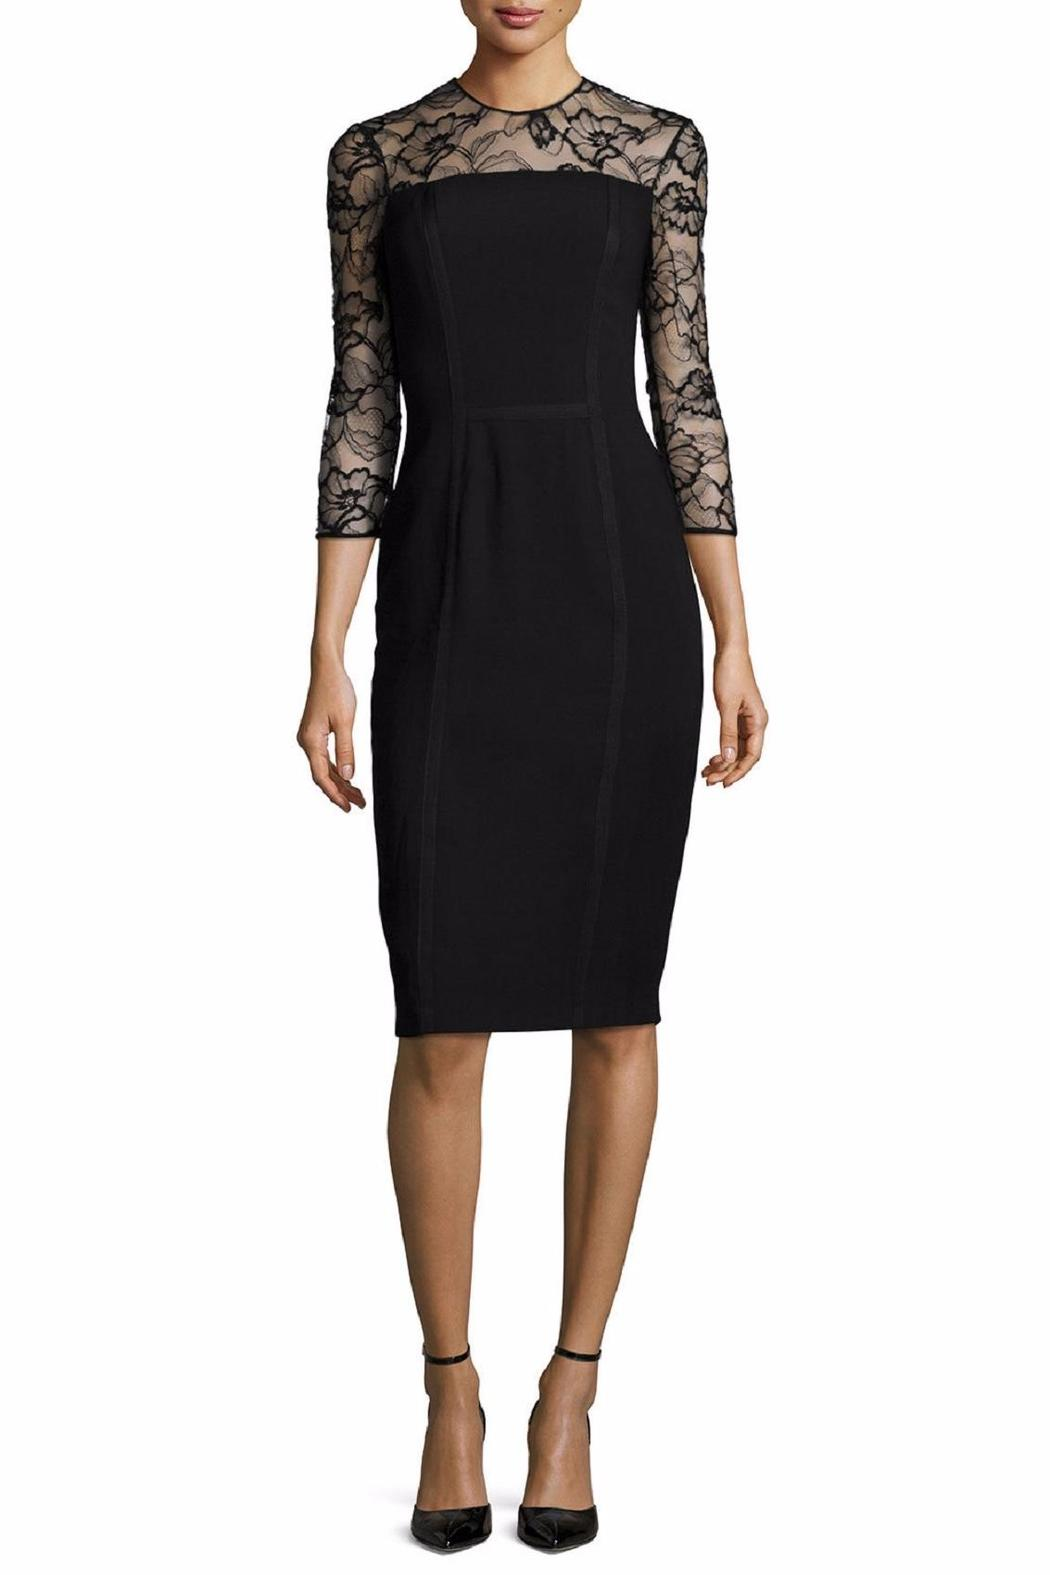 Carmen Marc Valvo Lace Trim Dress - Main Image